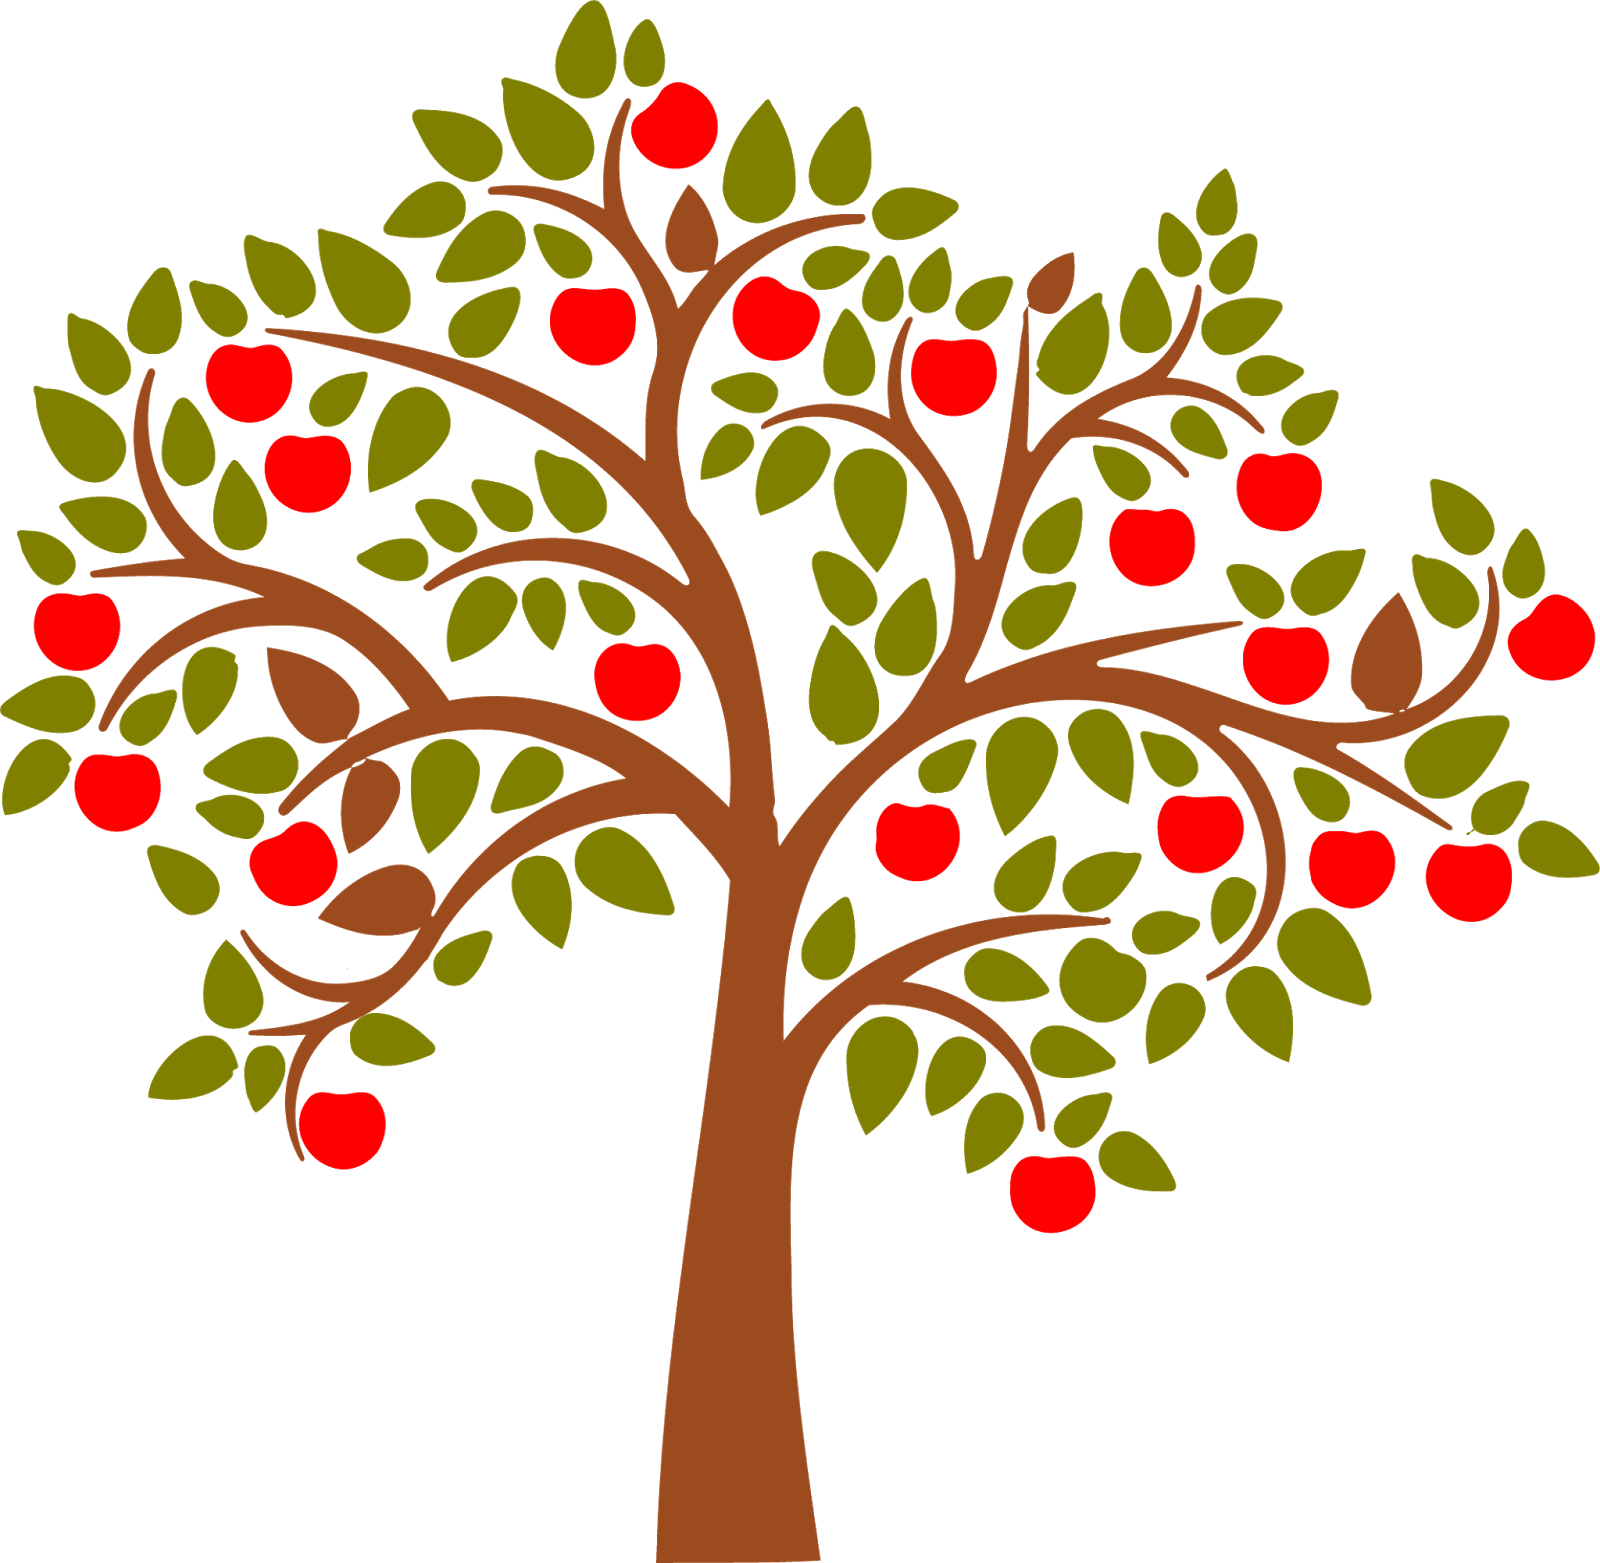 Apple and fall leaf clipart svg stock Apple Malus sylvestris Tree Clip art - Apple Tree Cartoon 1600*1563 ... svg stock